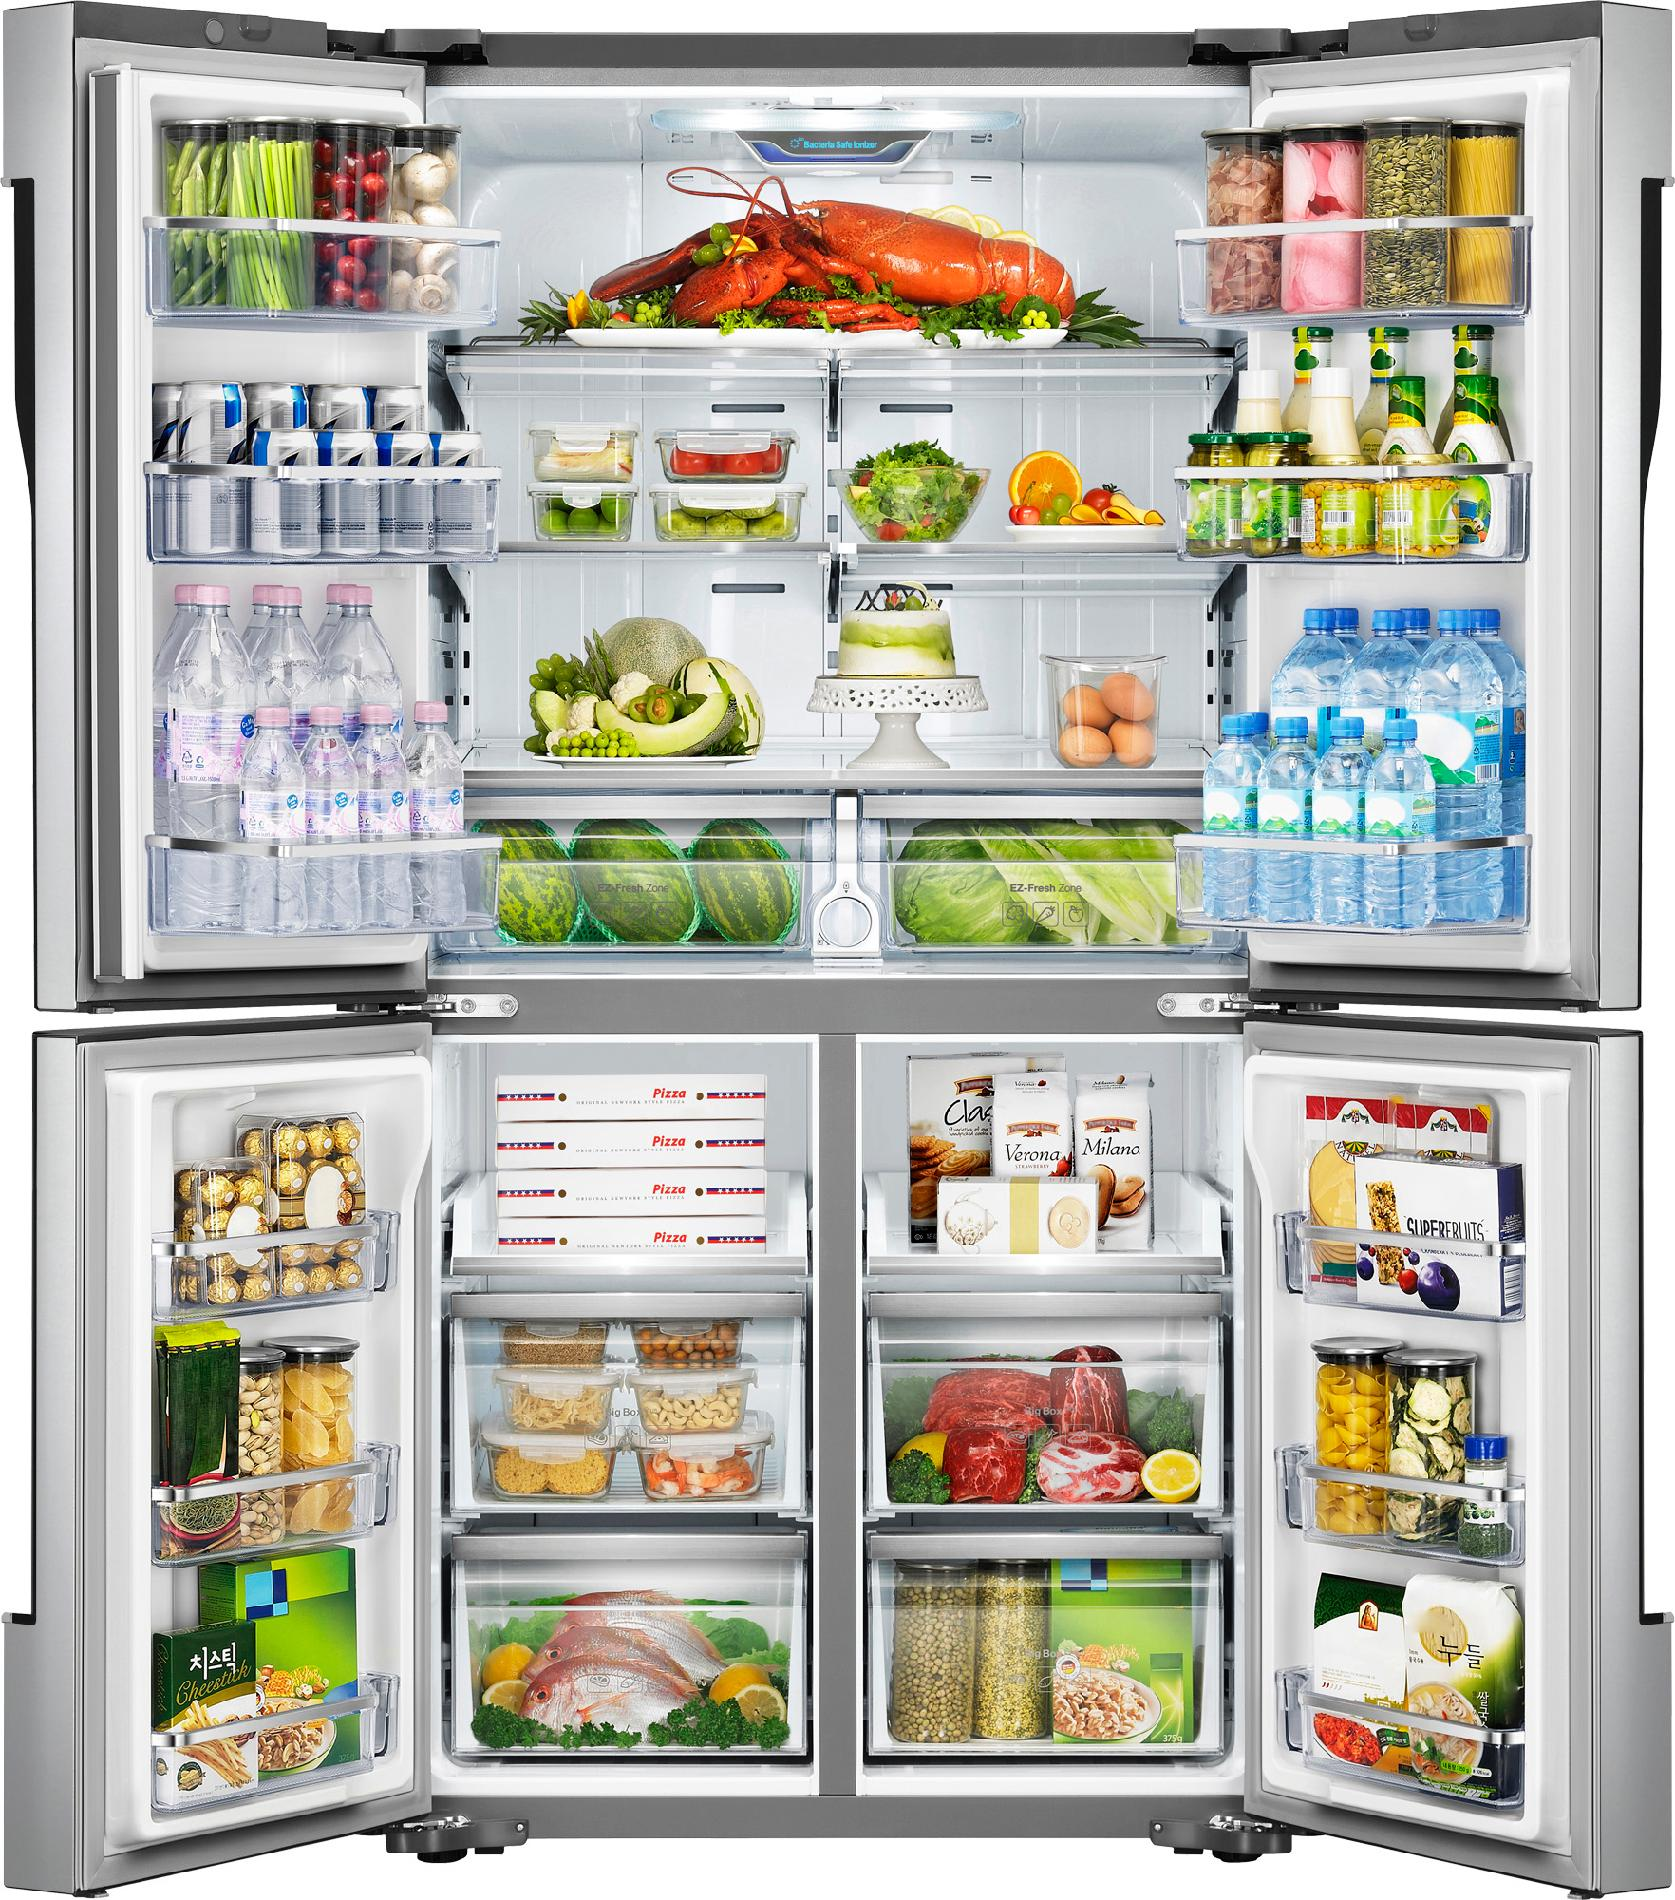 Samsung 32 cu. ft. 4-Door Refrigerator w/ Convertible Zone - Stainless Steel